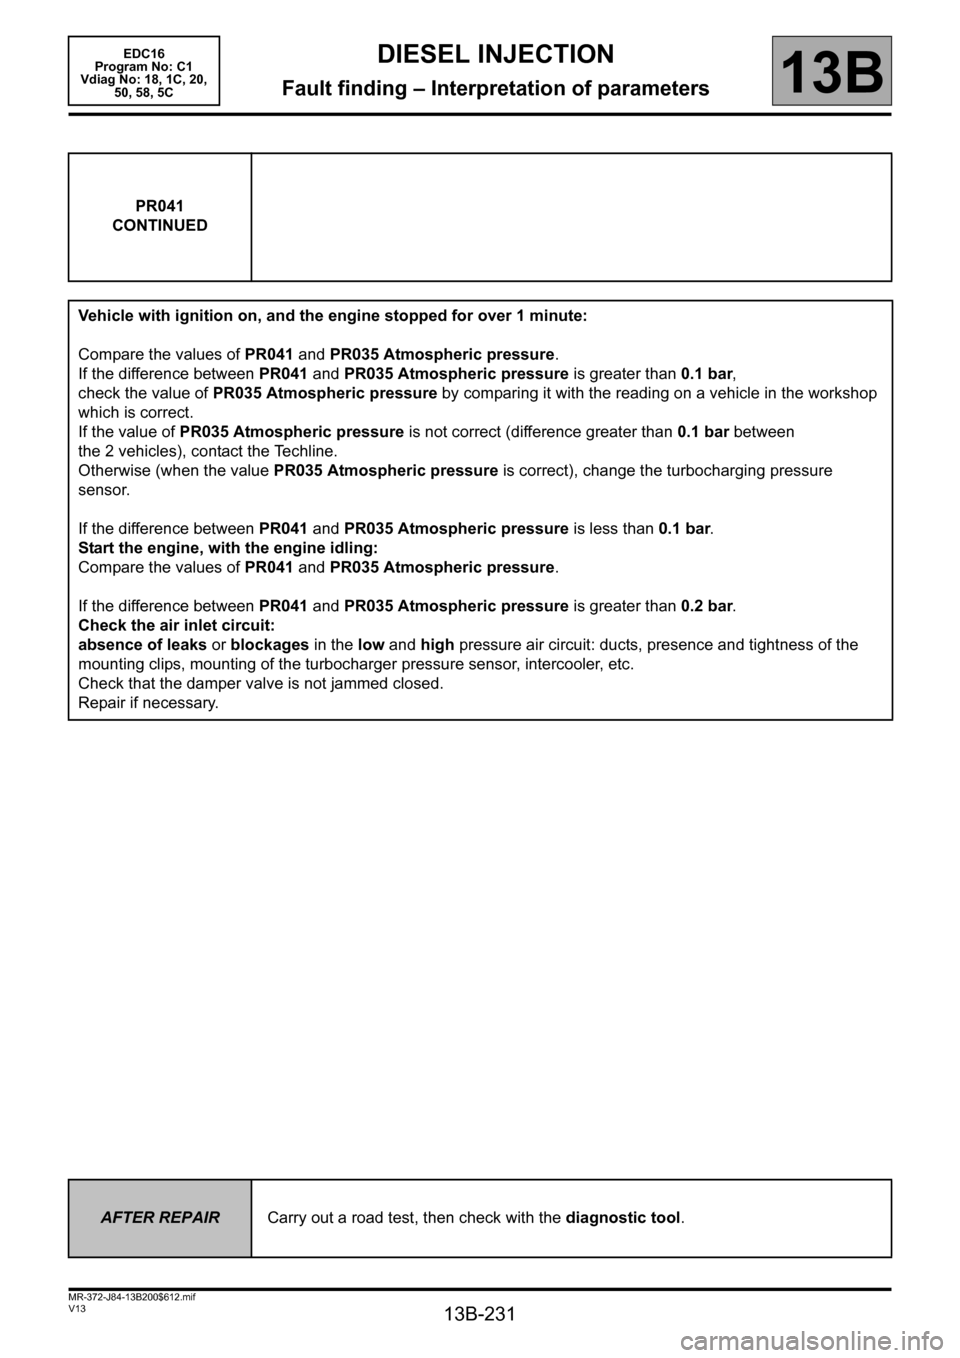 RENAULT SCENIC 2011 J95 / 3.G Engine And Peripherals EDC16 Workshop Manual, Page 231